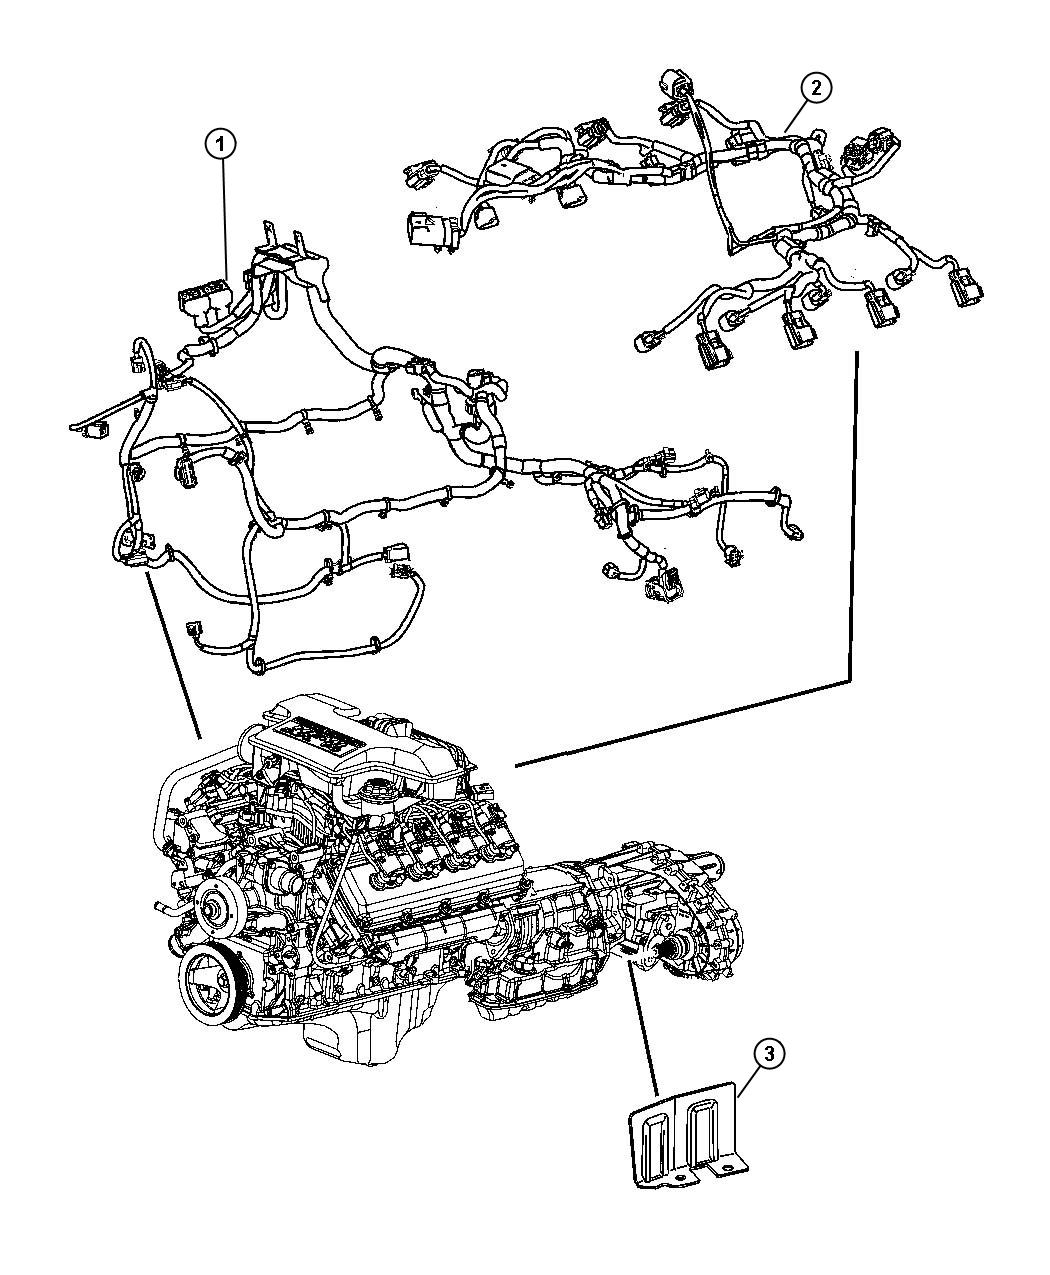 2005 Dodge Durango Engine Diagram : 2005 dodge durango wiring engine 56051069af myrtle ~ A.2002-acura-tl-radio.info Haus und Dekorationen